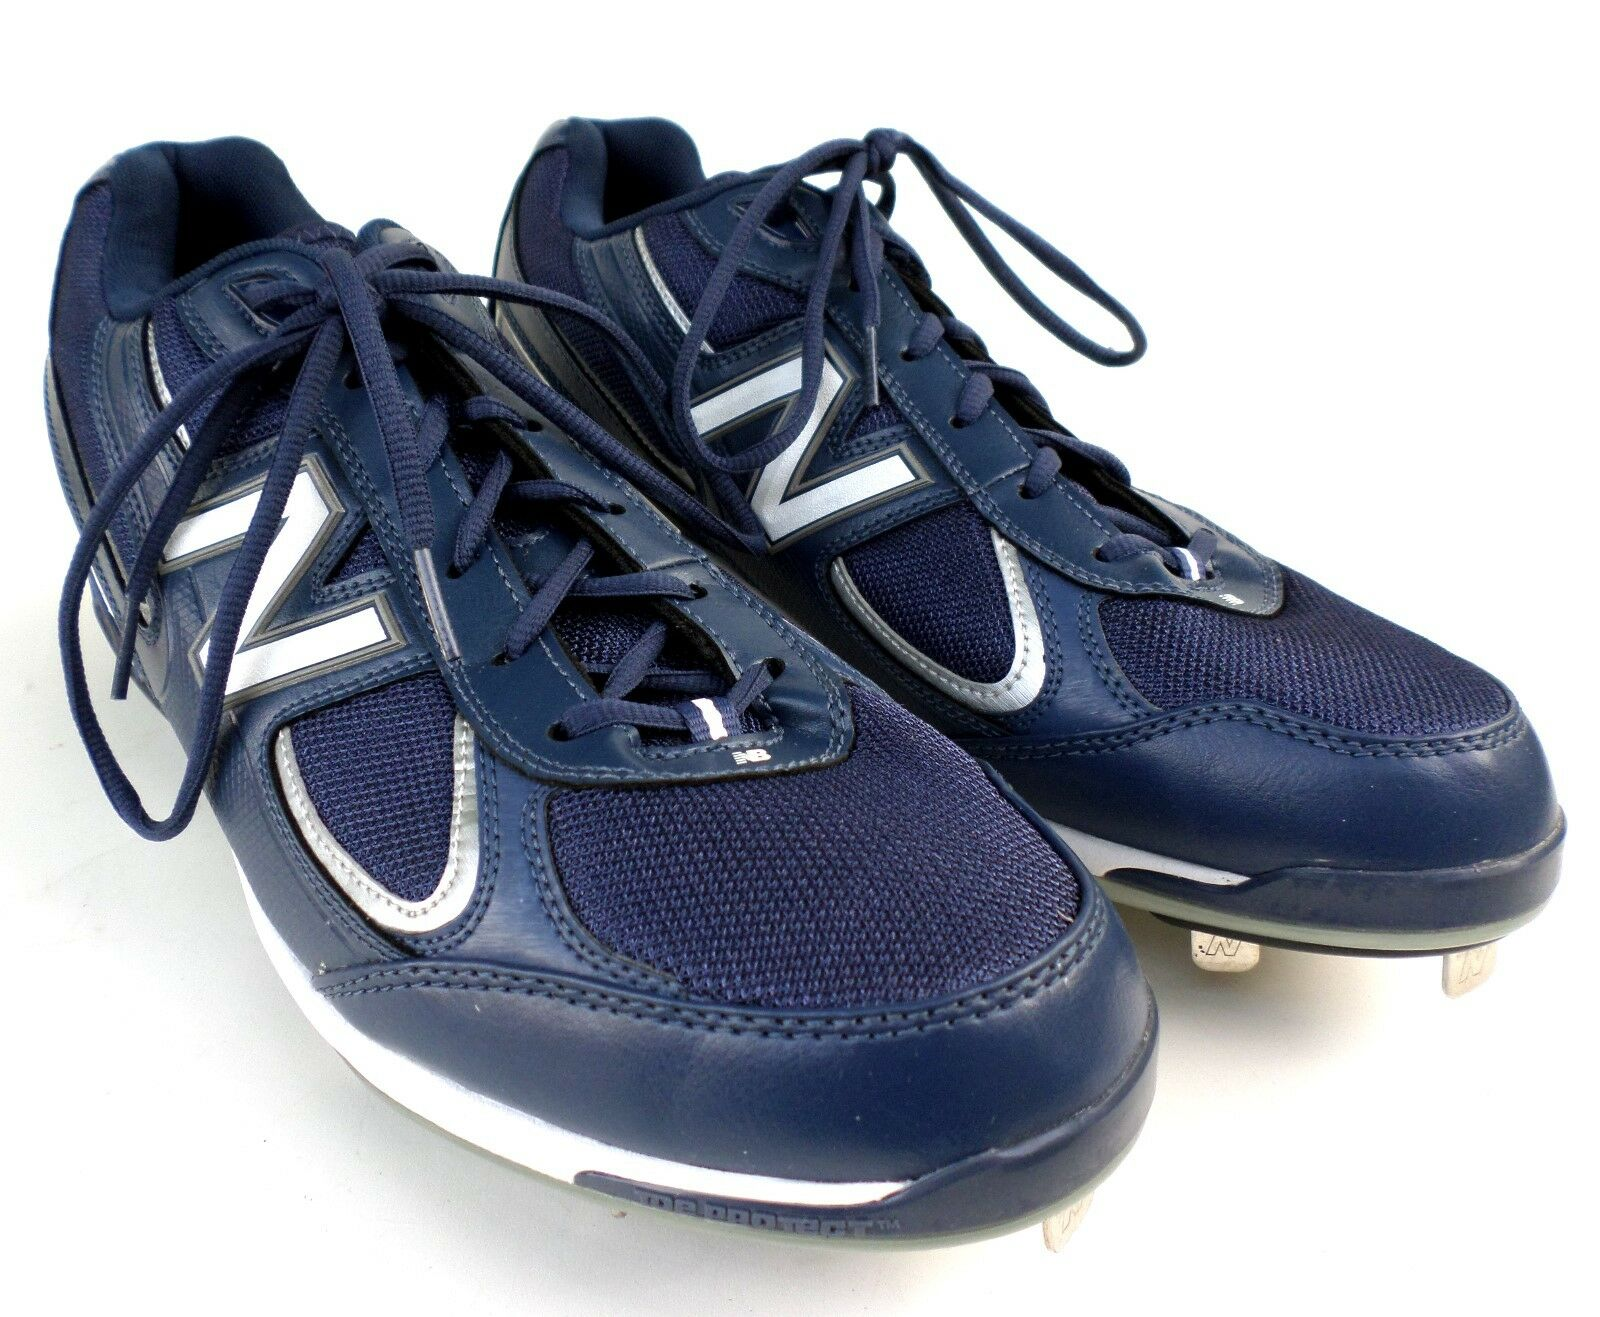 New Balance Mens Baseball Cleats Size 15, 2E Extra Wide Nergy Navy bluee MB1103LB